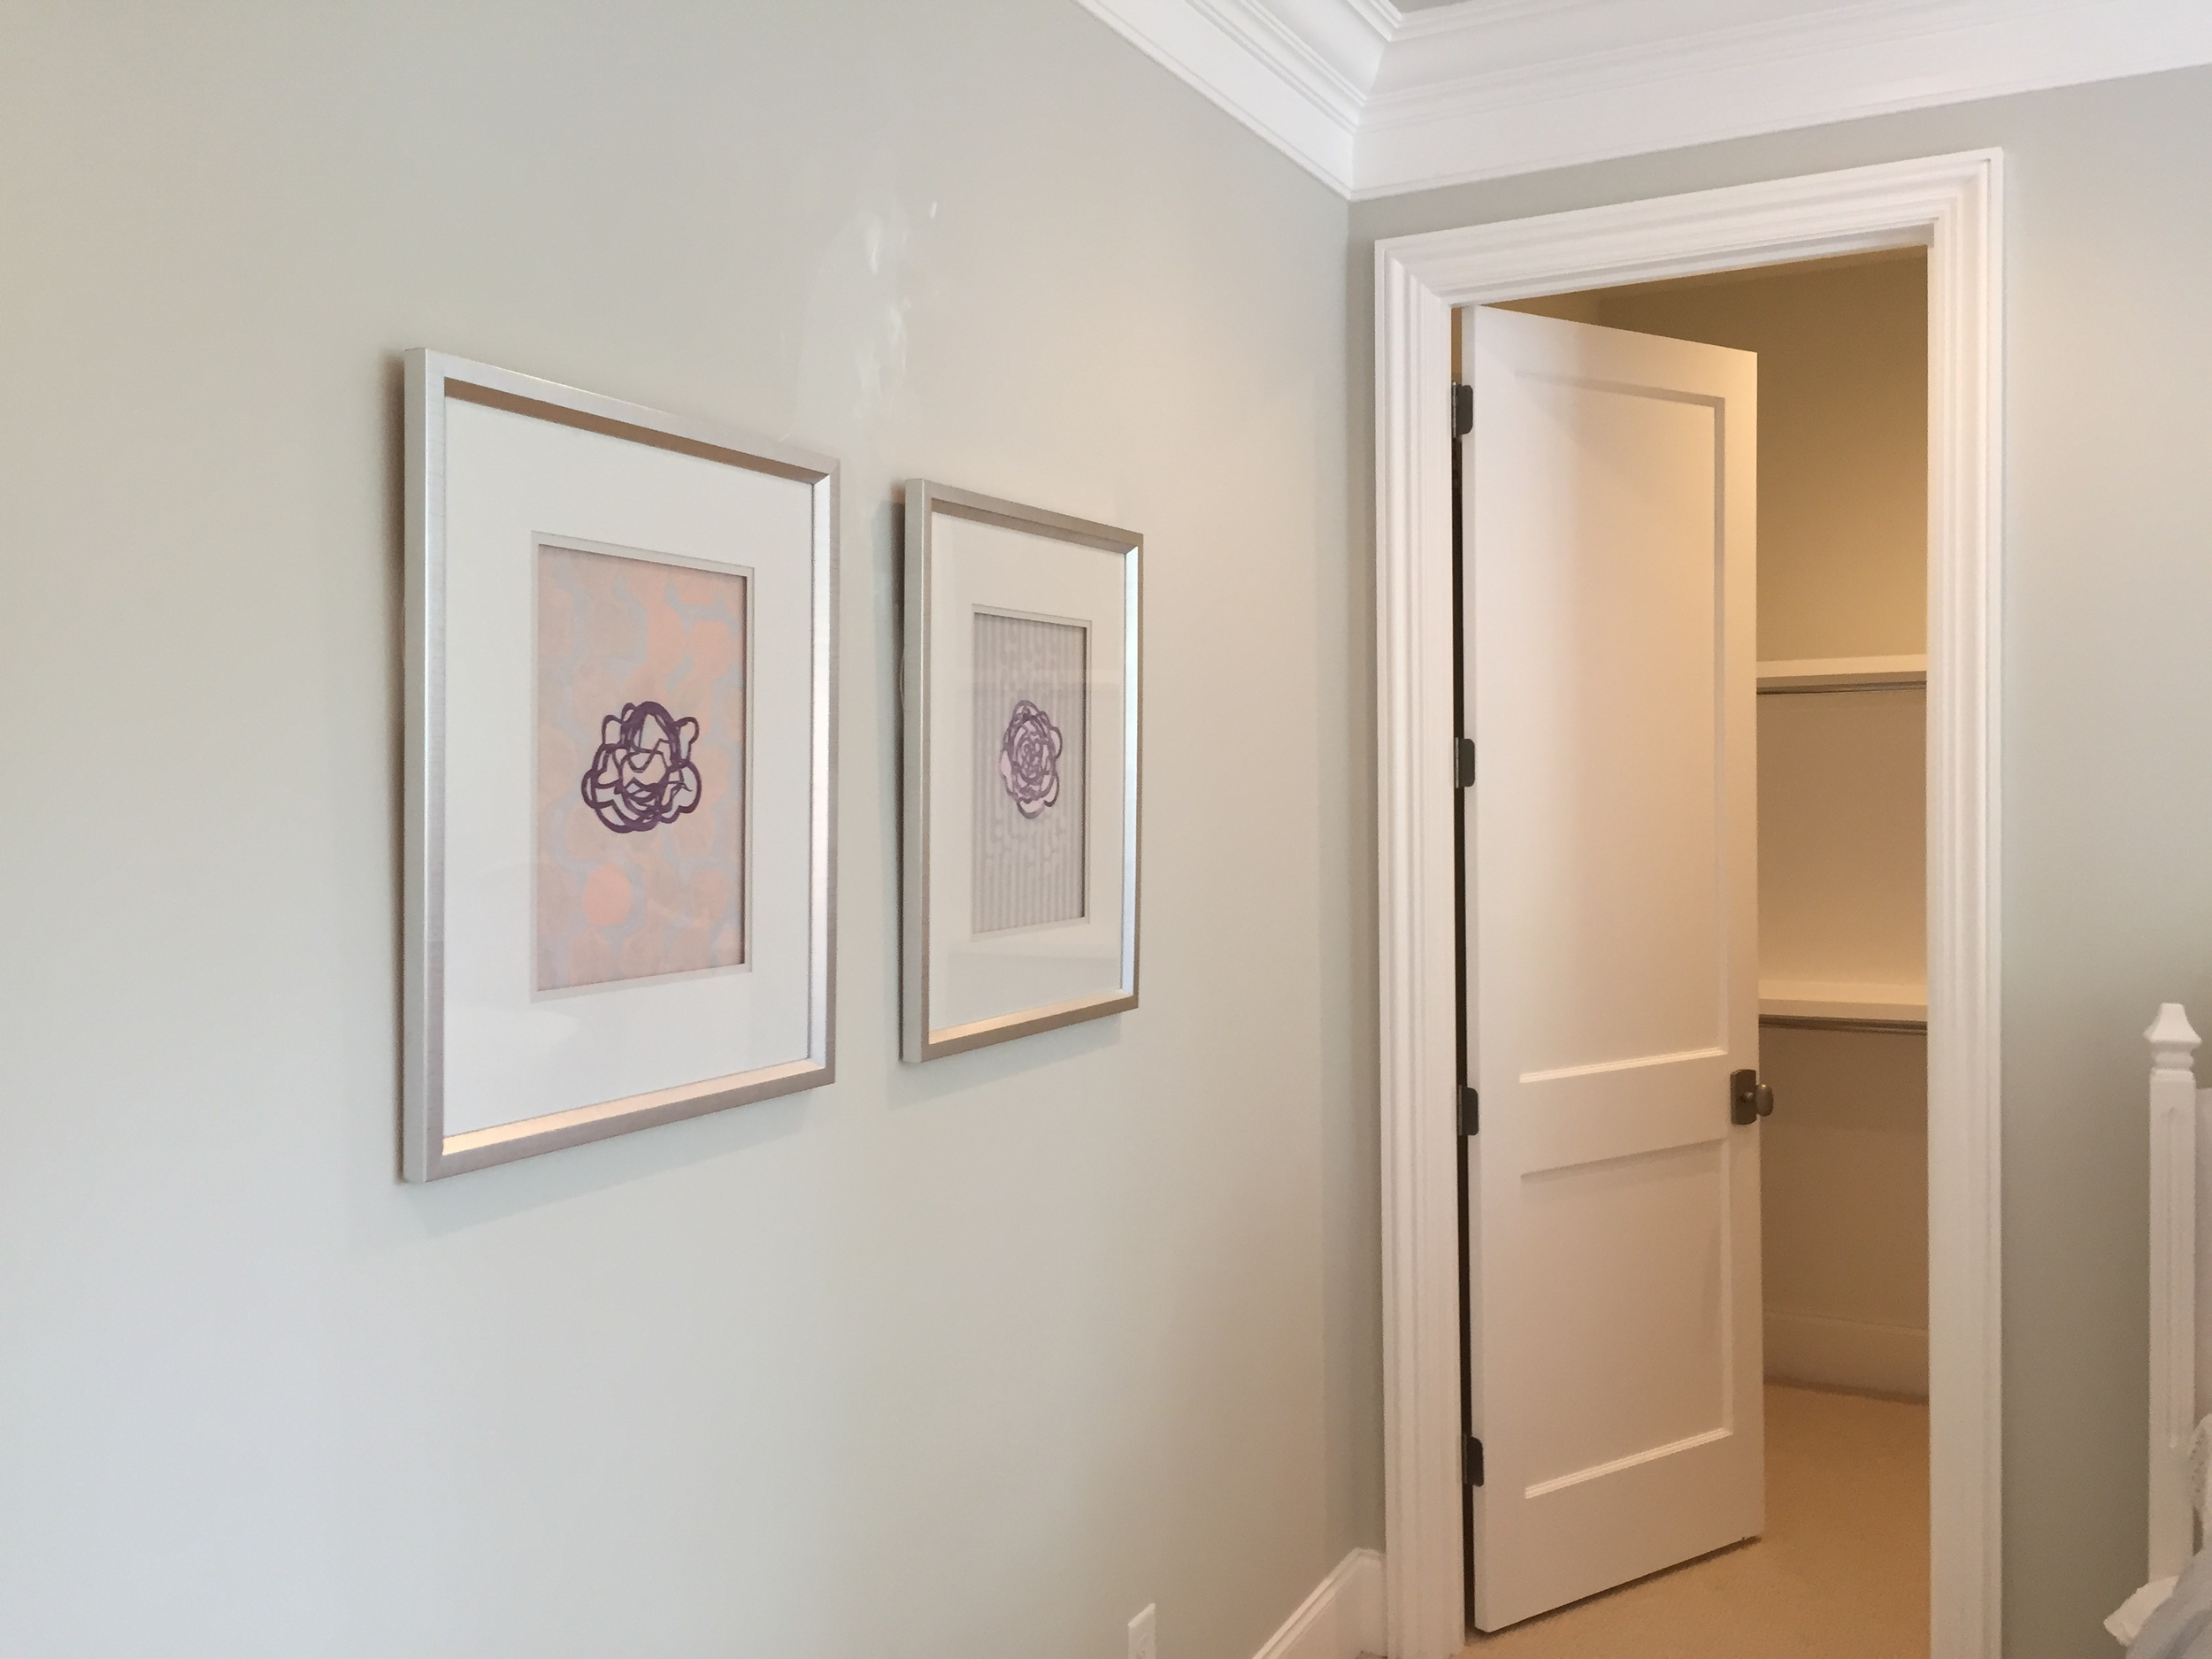 Soft, neutral colors were used throughout. Some popular colors were Benjamin Moore Titanium OC49, Benjamin Moore Moonshine OC56, and Sherwin Williams Agreeable Grey